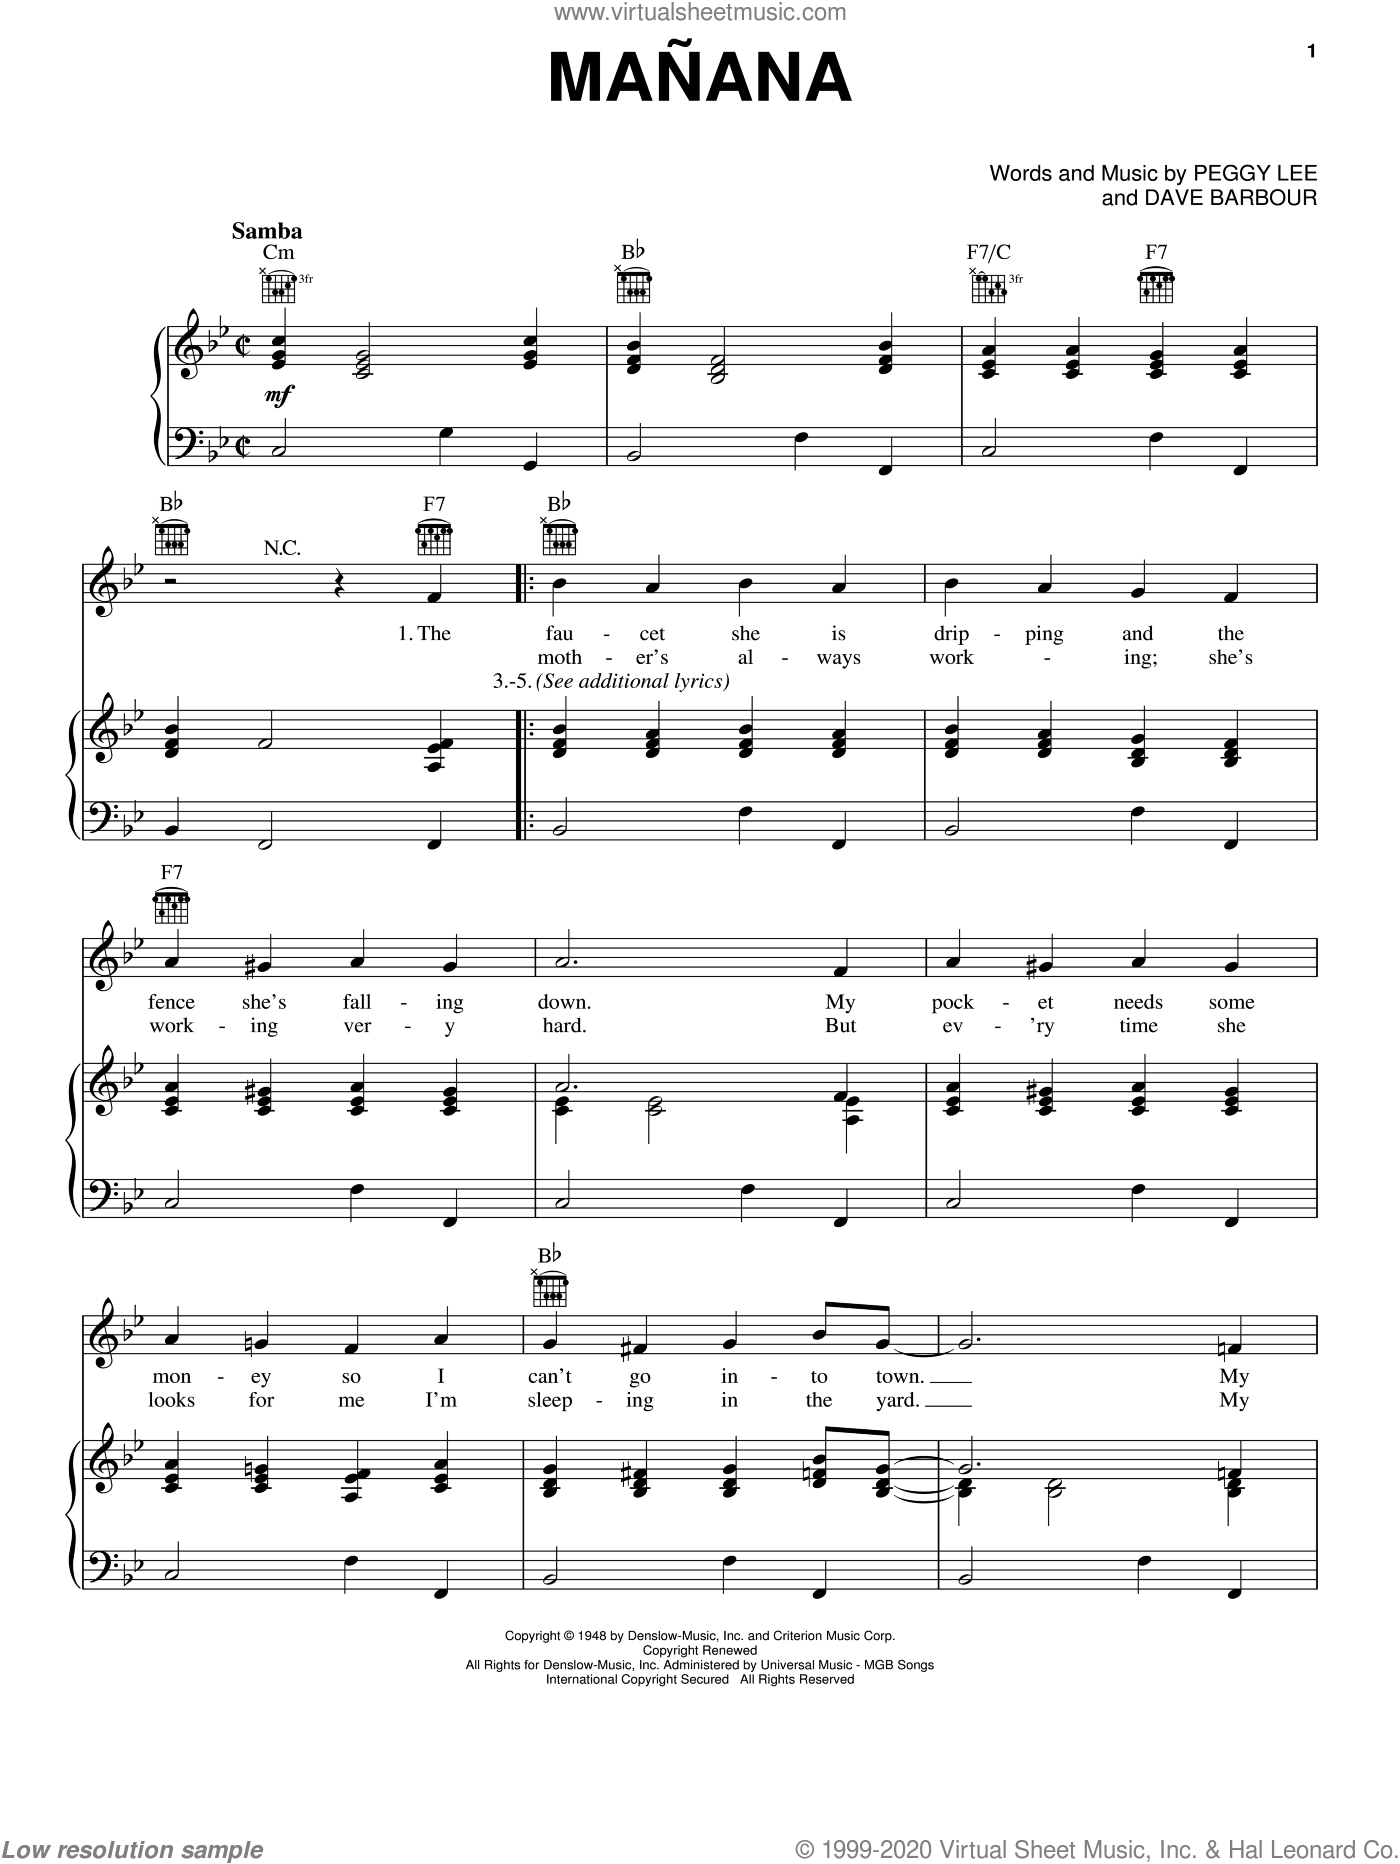 Manana sheet music for voice, piano or guitar by Dave Barbour